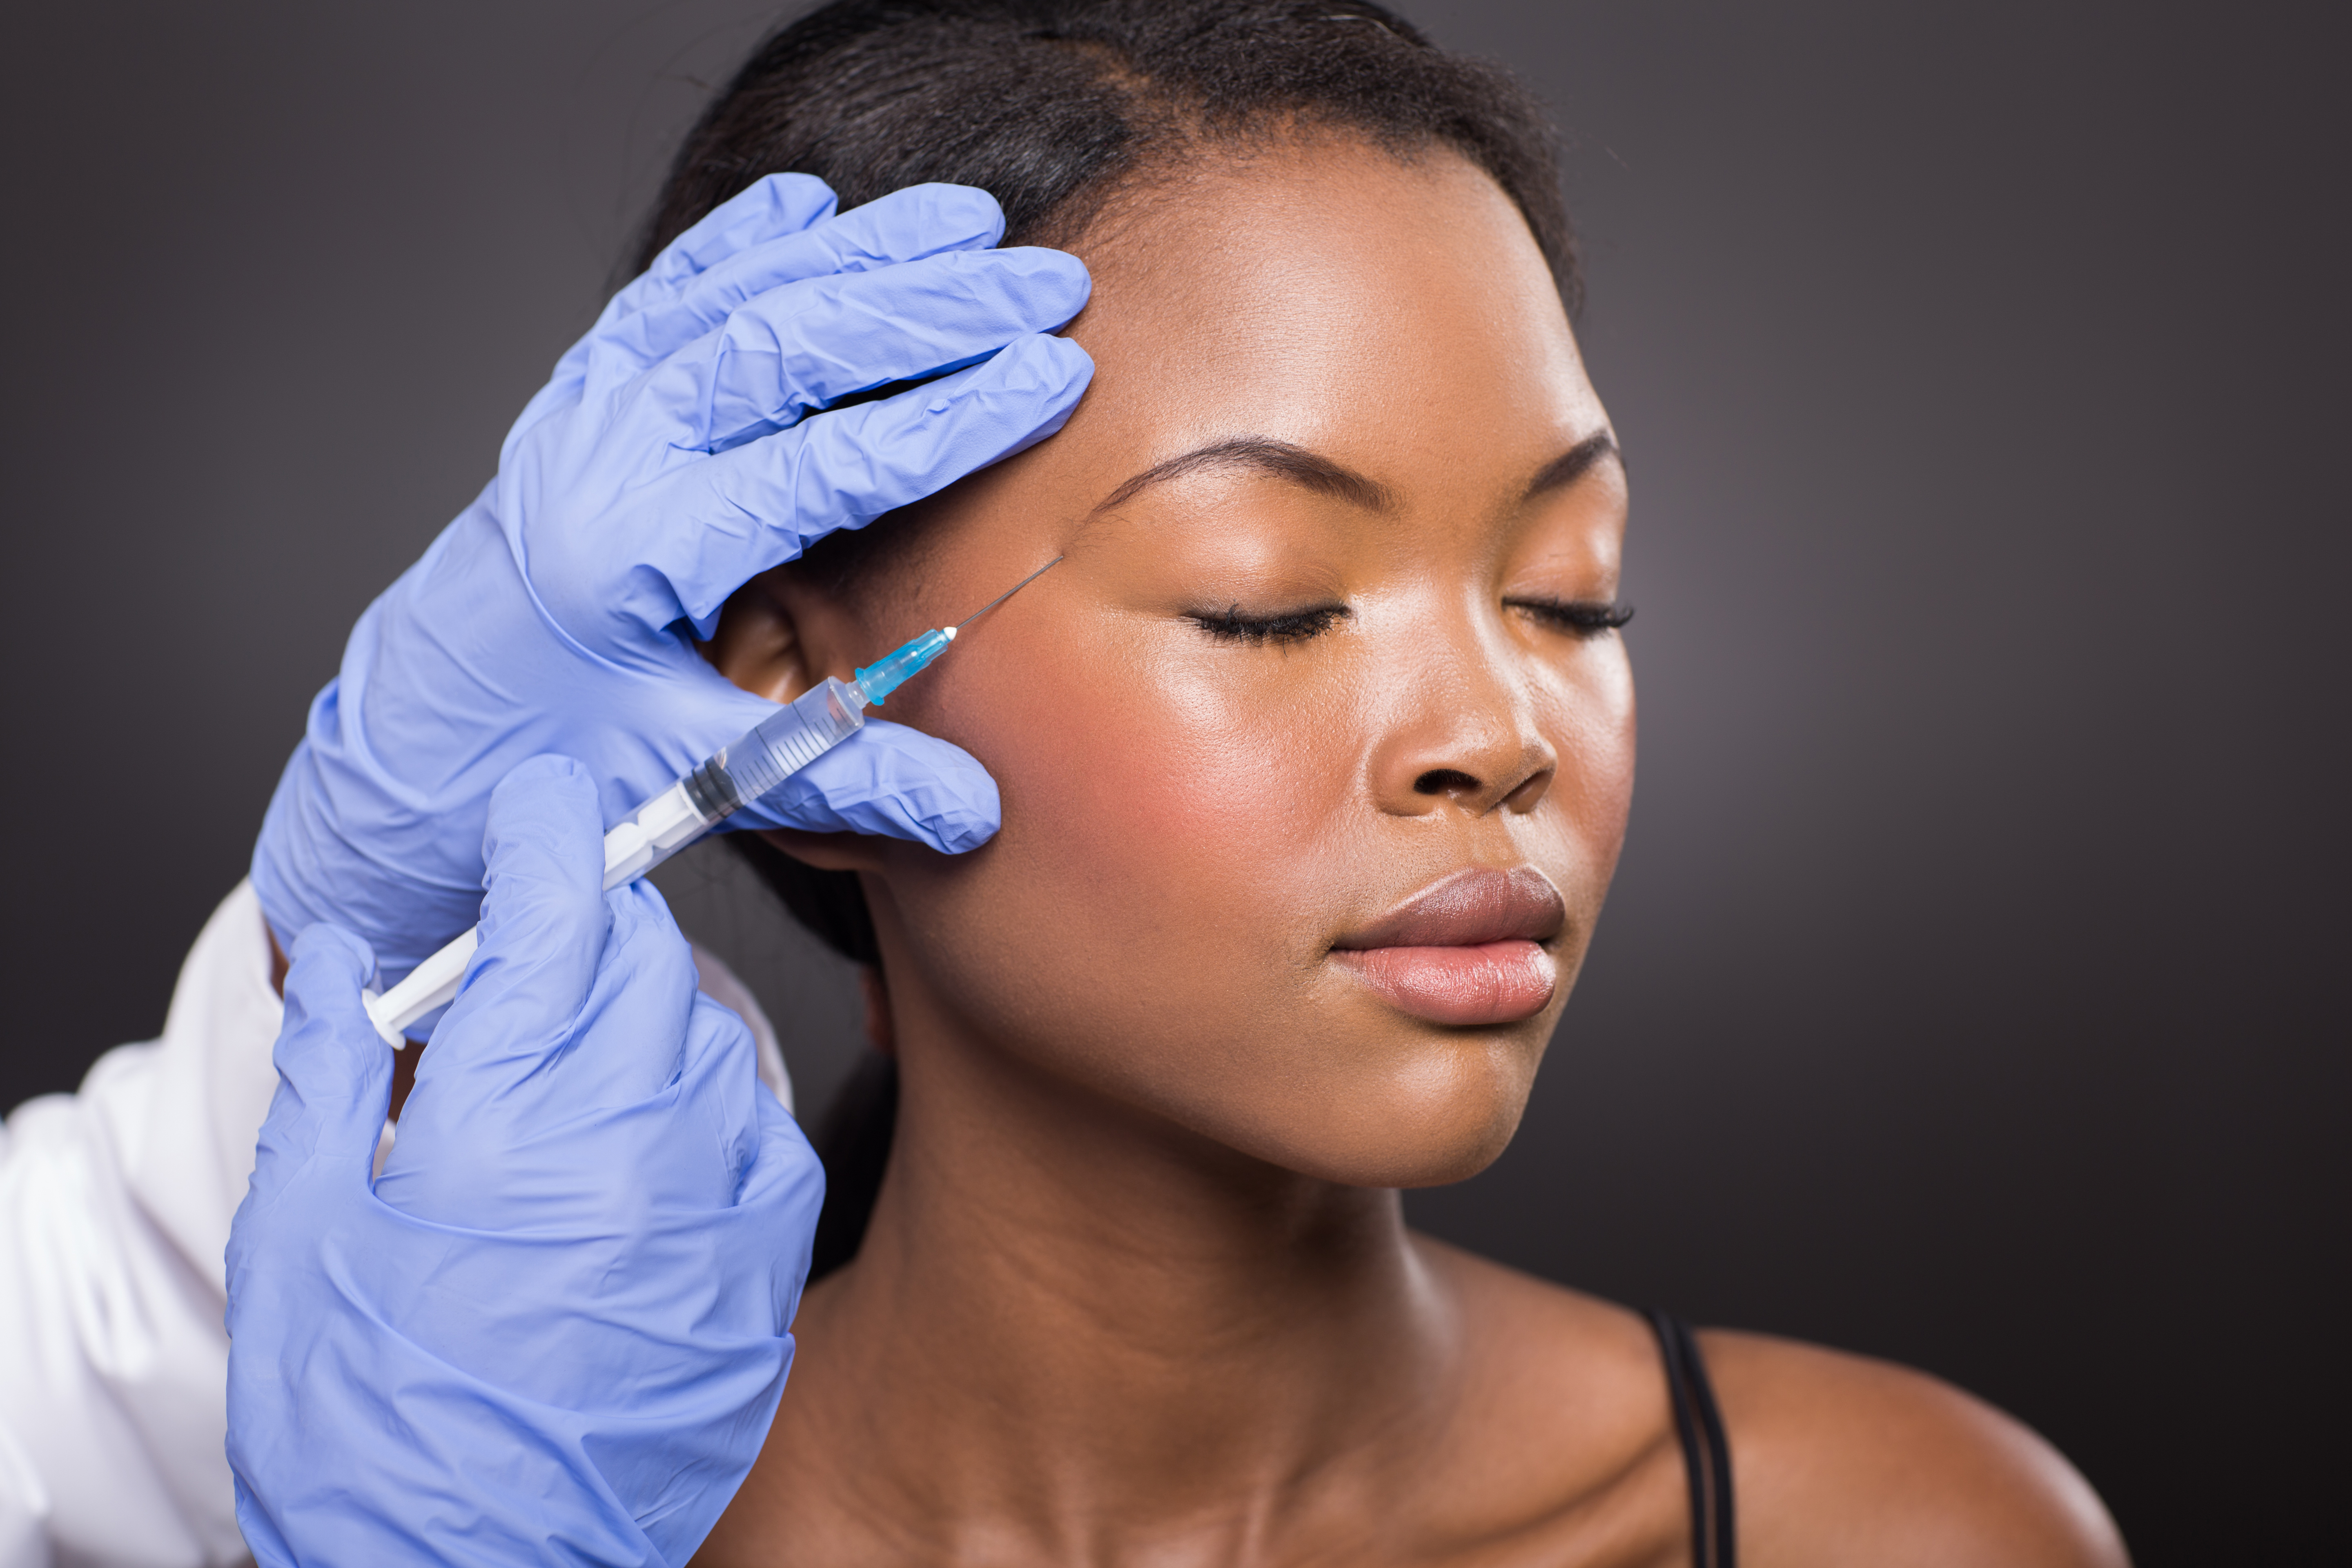 woman getting an injection for acne, healthy skin after 40